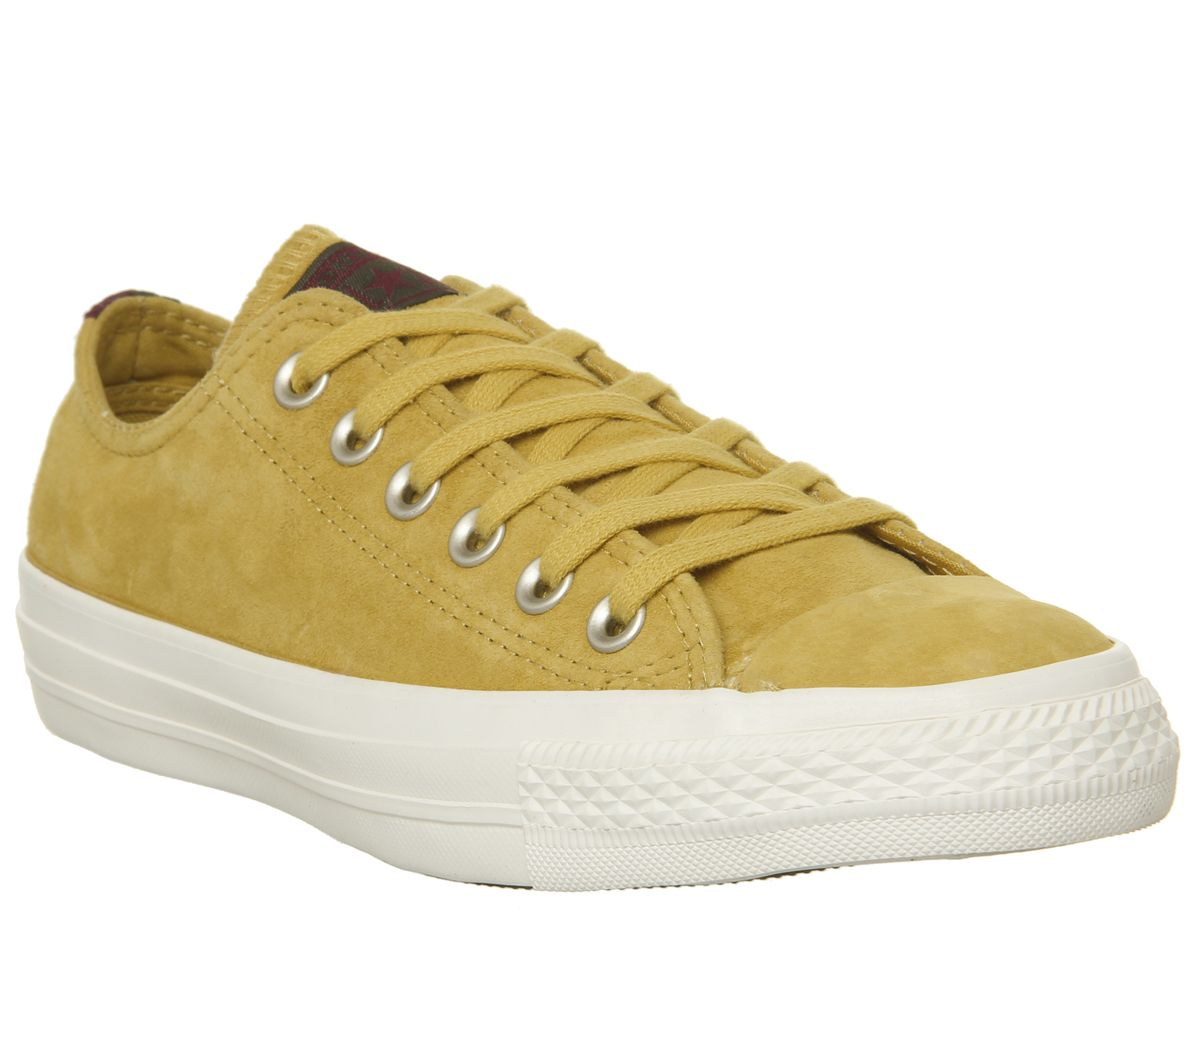 d6c7fcef5956 Sentinel Mens Converse All Star Low Leather Trainers Desert Marigold Egret  Heel Stripe Ex